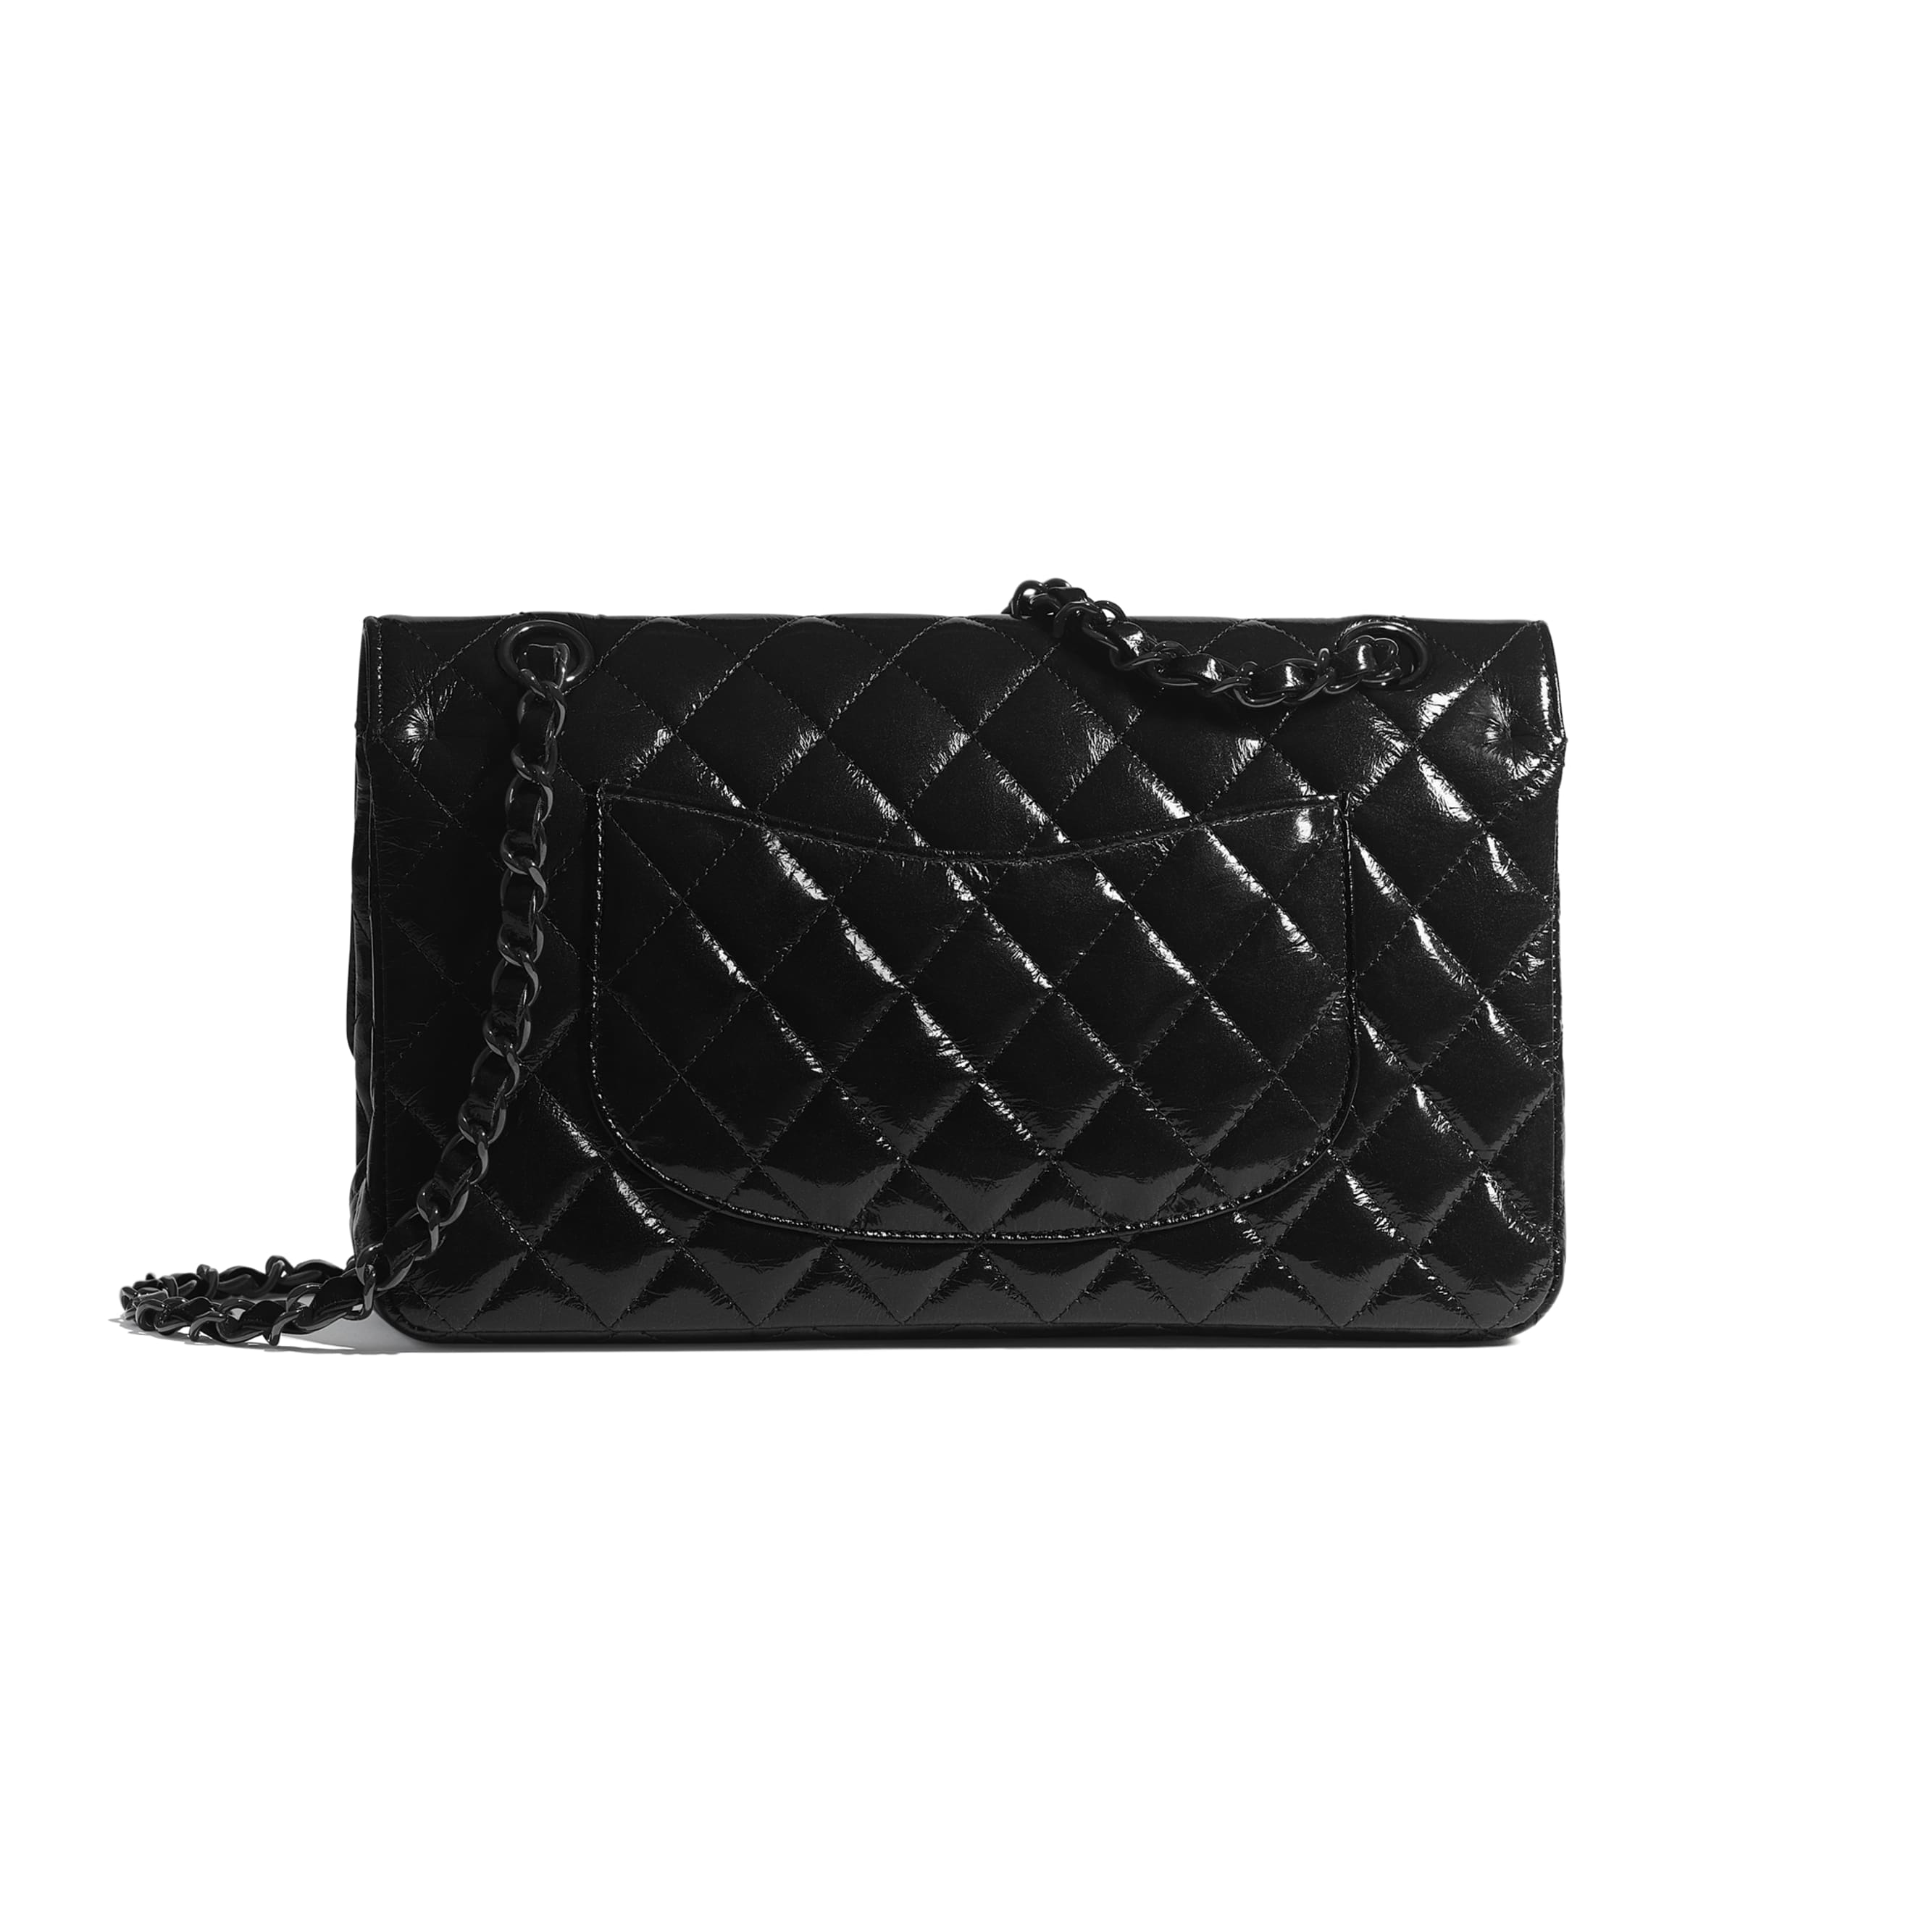 Classic Handbag - Black - Shiny Crumpled Calfskin & Black Metal - CHANEL - Alternative view - see standard sized version